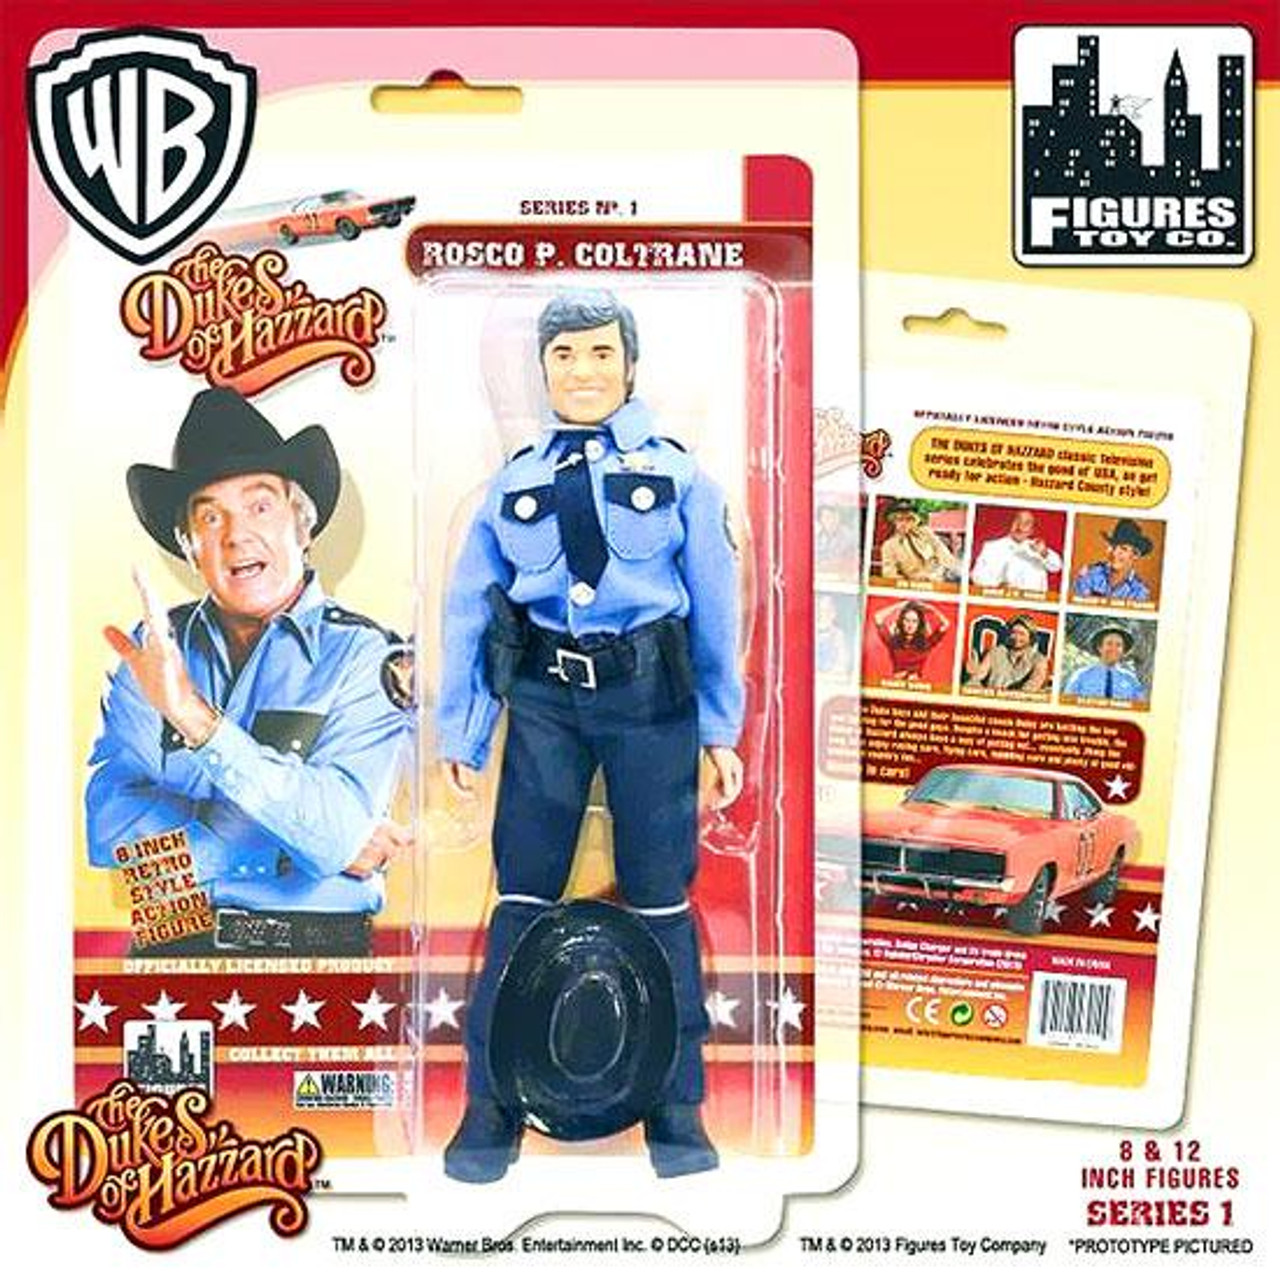 The Dukes of Hazzard Roscoe P. Coltrane Action Figure